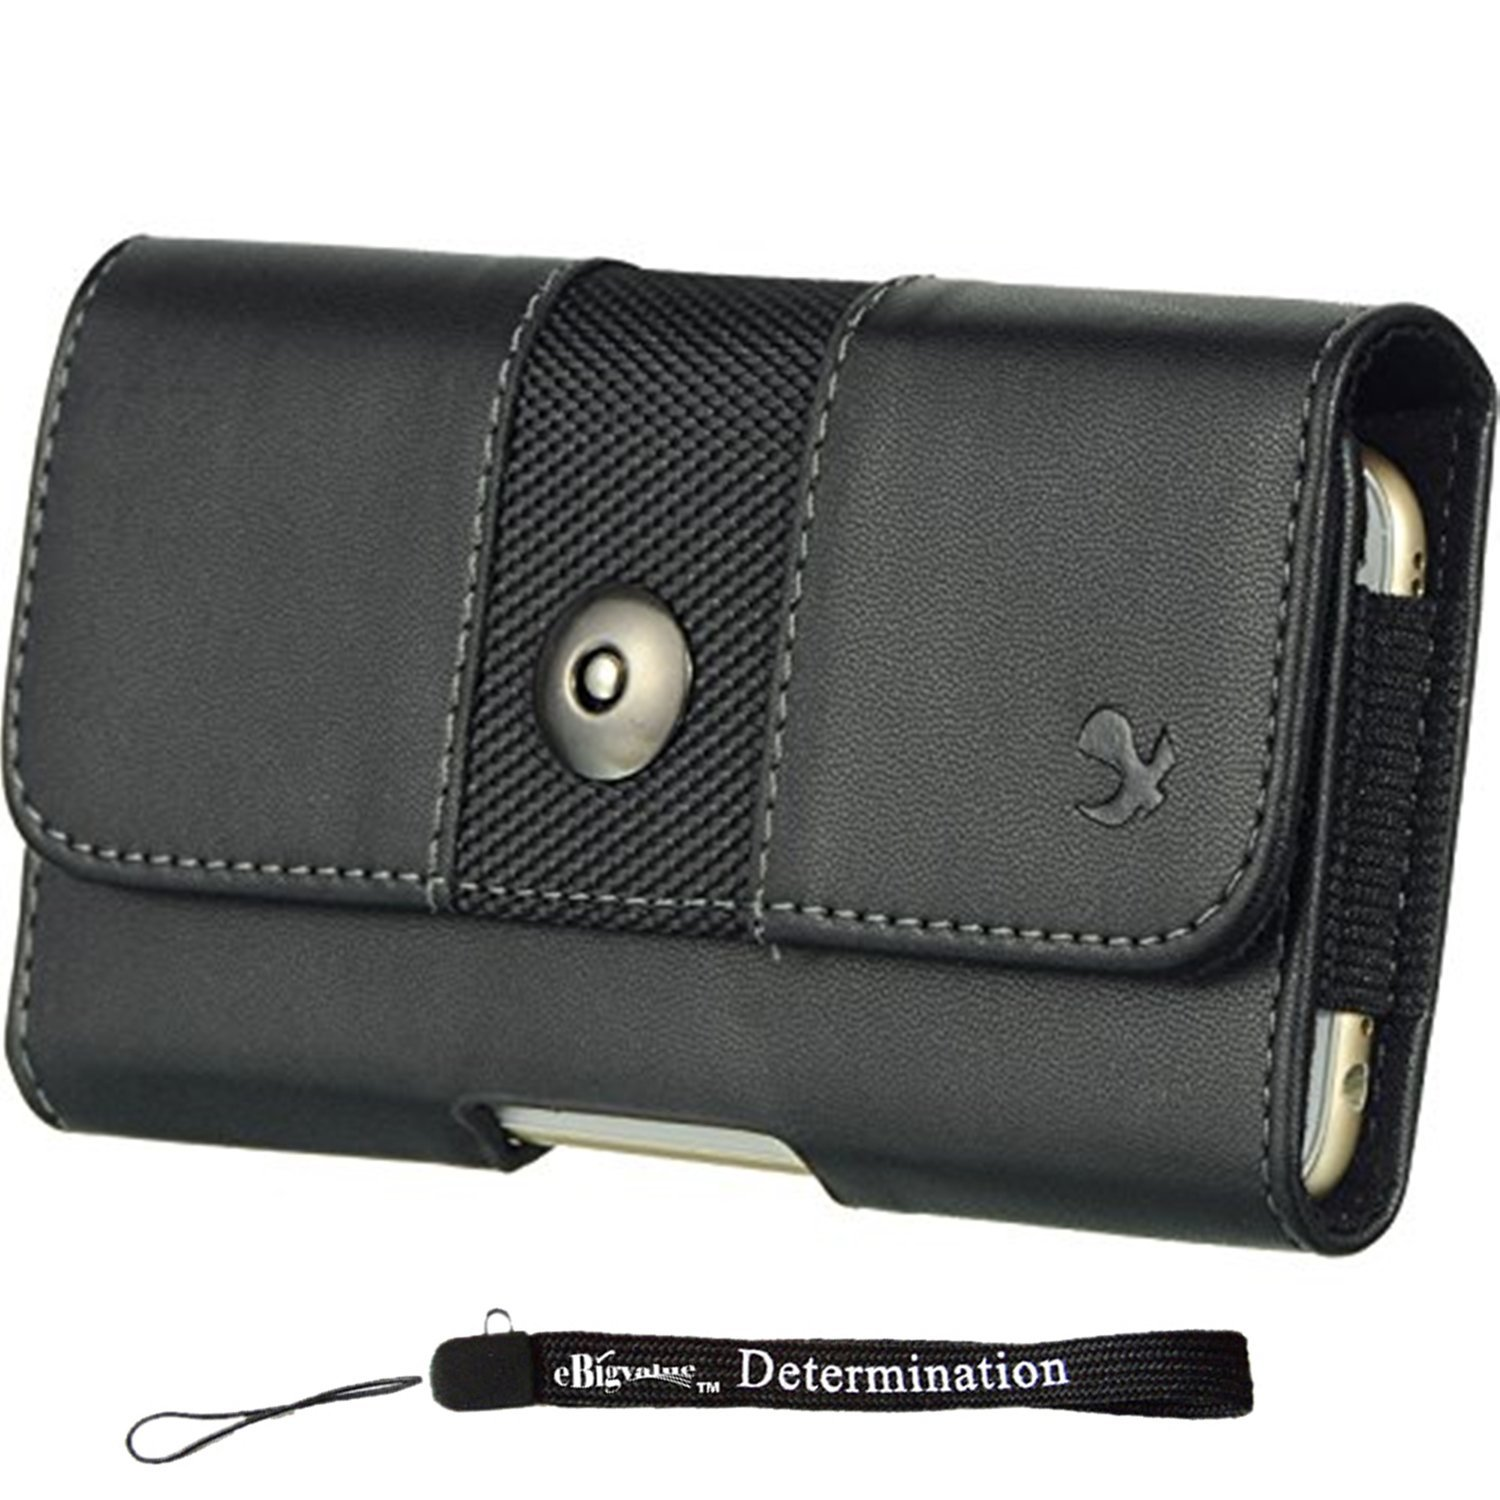 "Horizontal Executive Black Nylon Leather Hip Holster w/Belt Clip [CEL964] For Alcatel One Touch Conquest | Fierce XL | Pixi 3 5"" + eBigValue HandStrap"